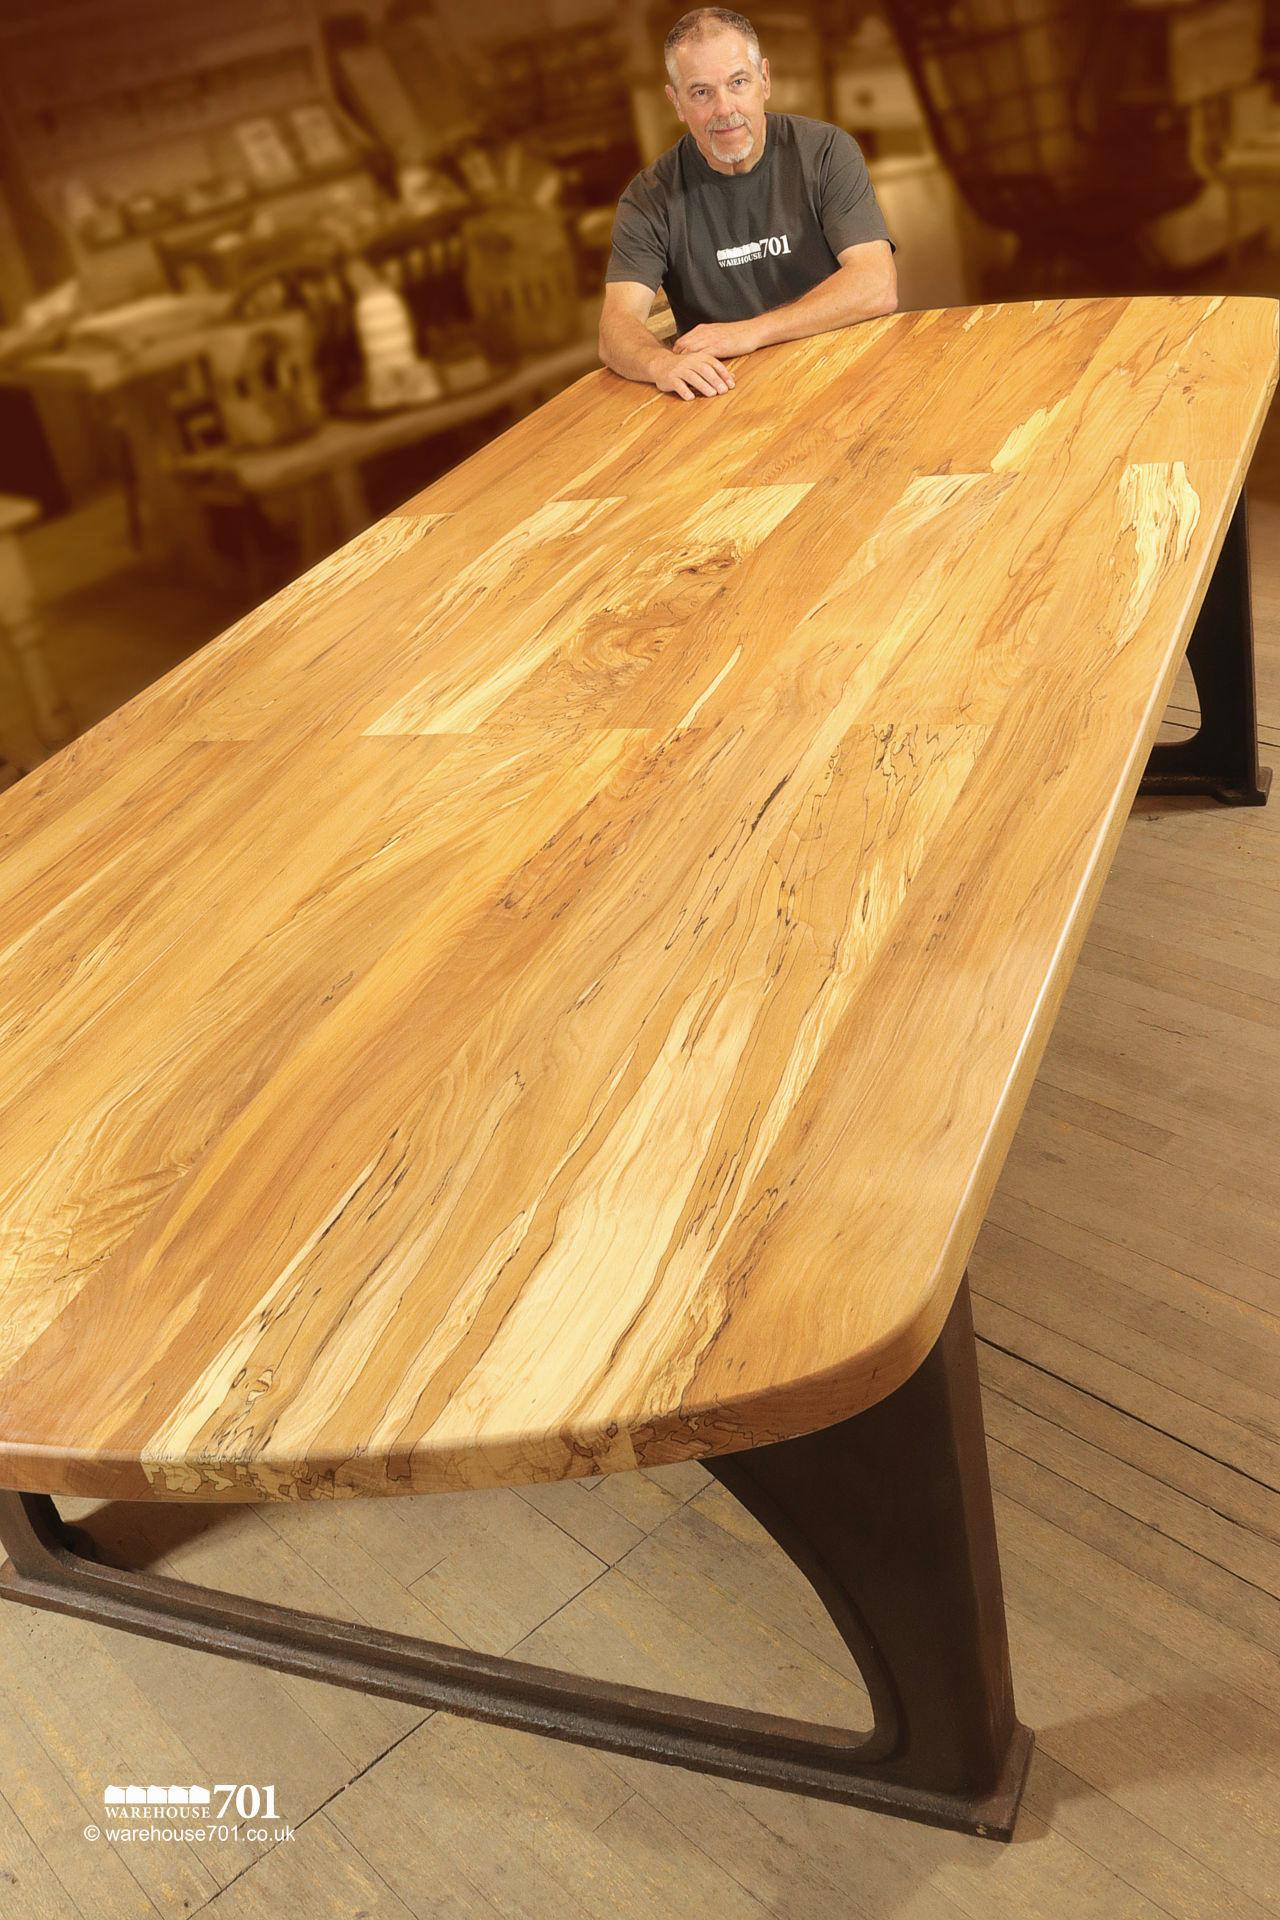 NEW Impressive Highly Figured Beech and Cast Iron Dining or Refectory Table